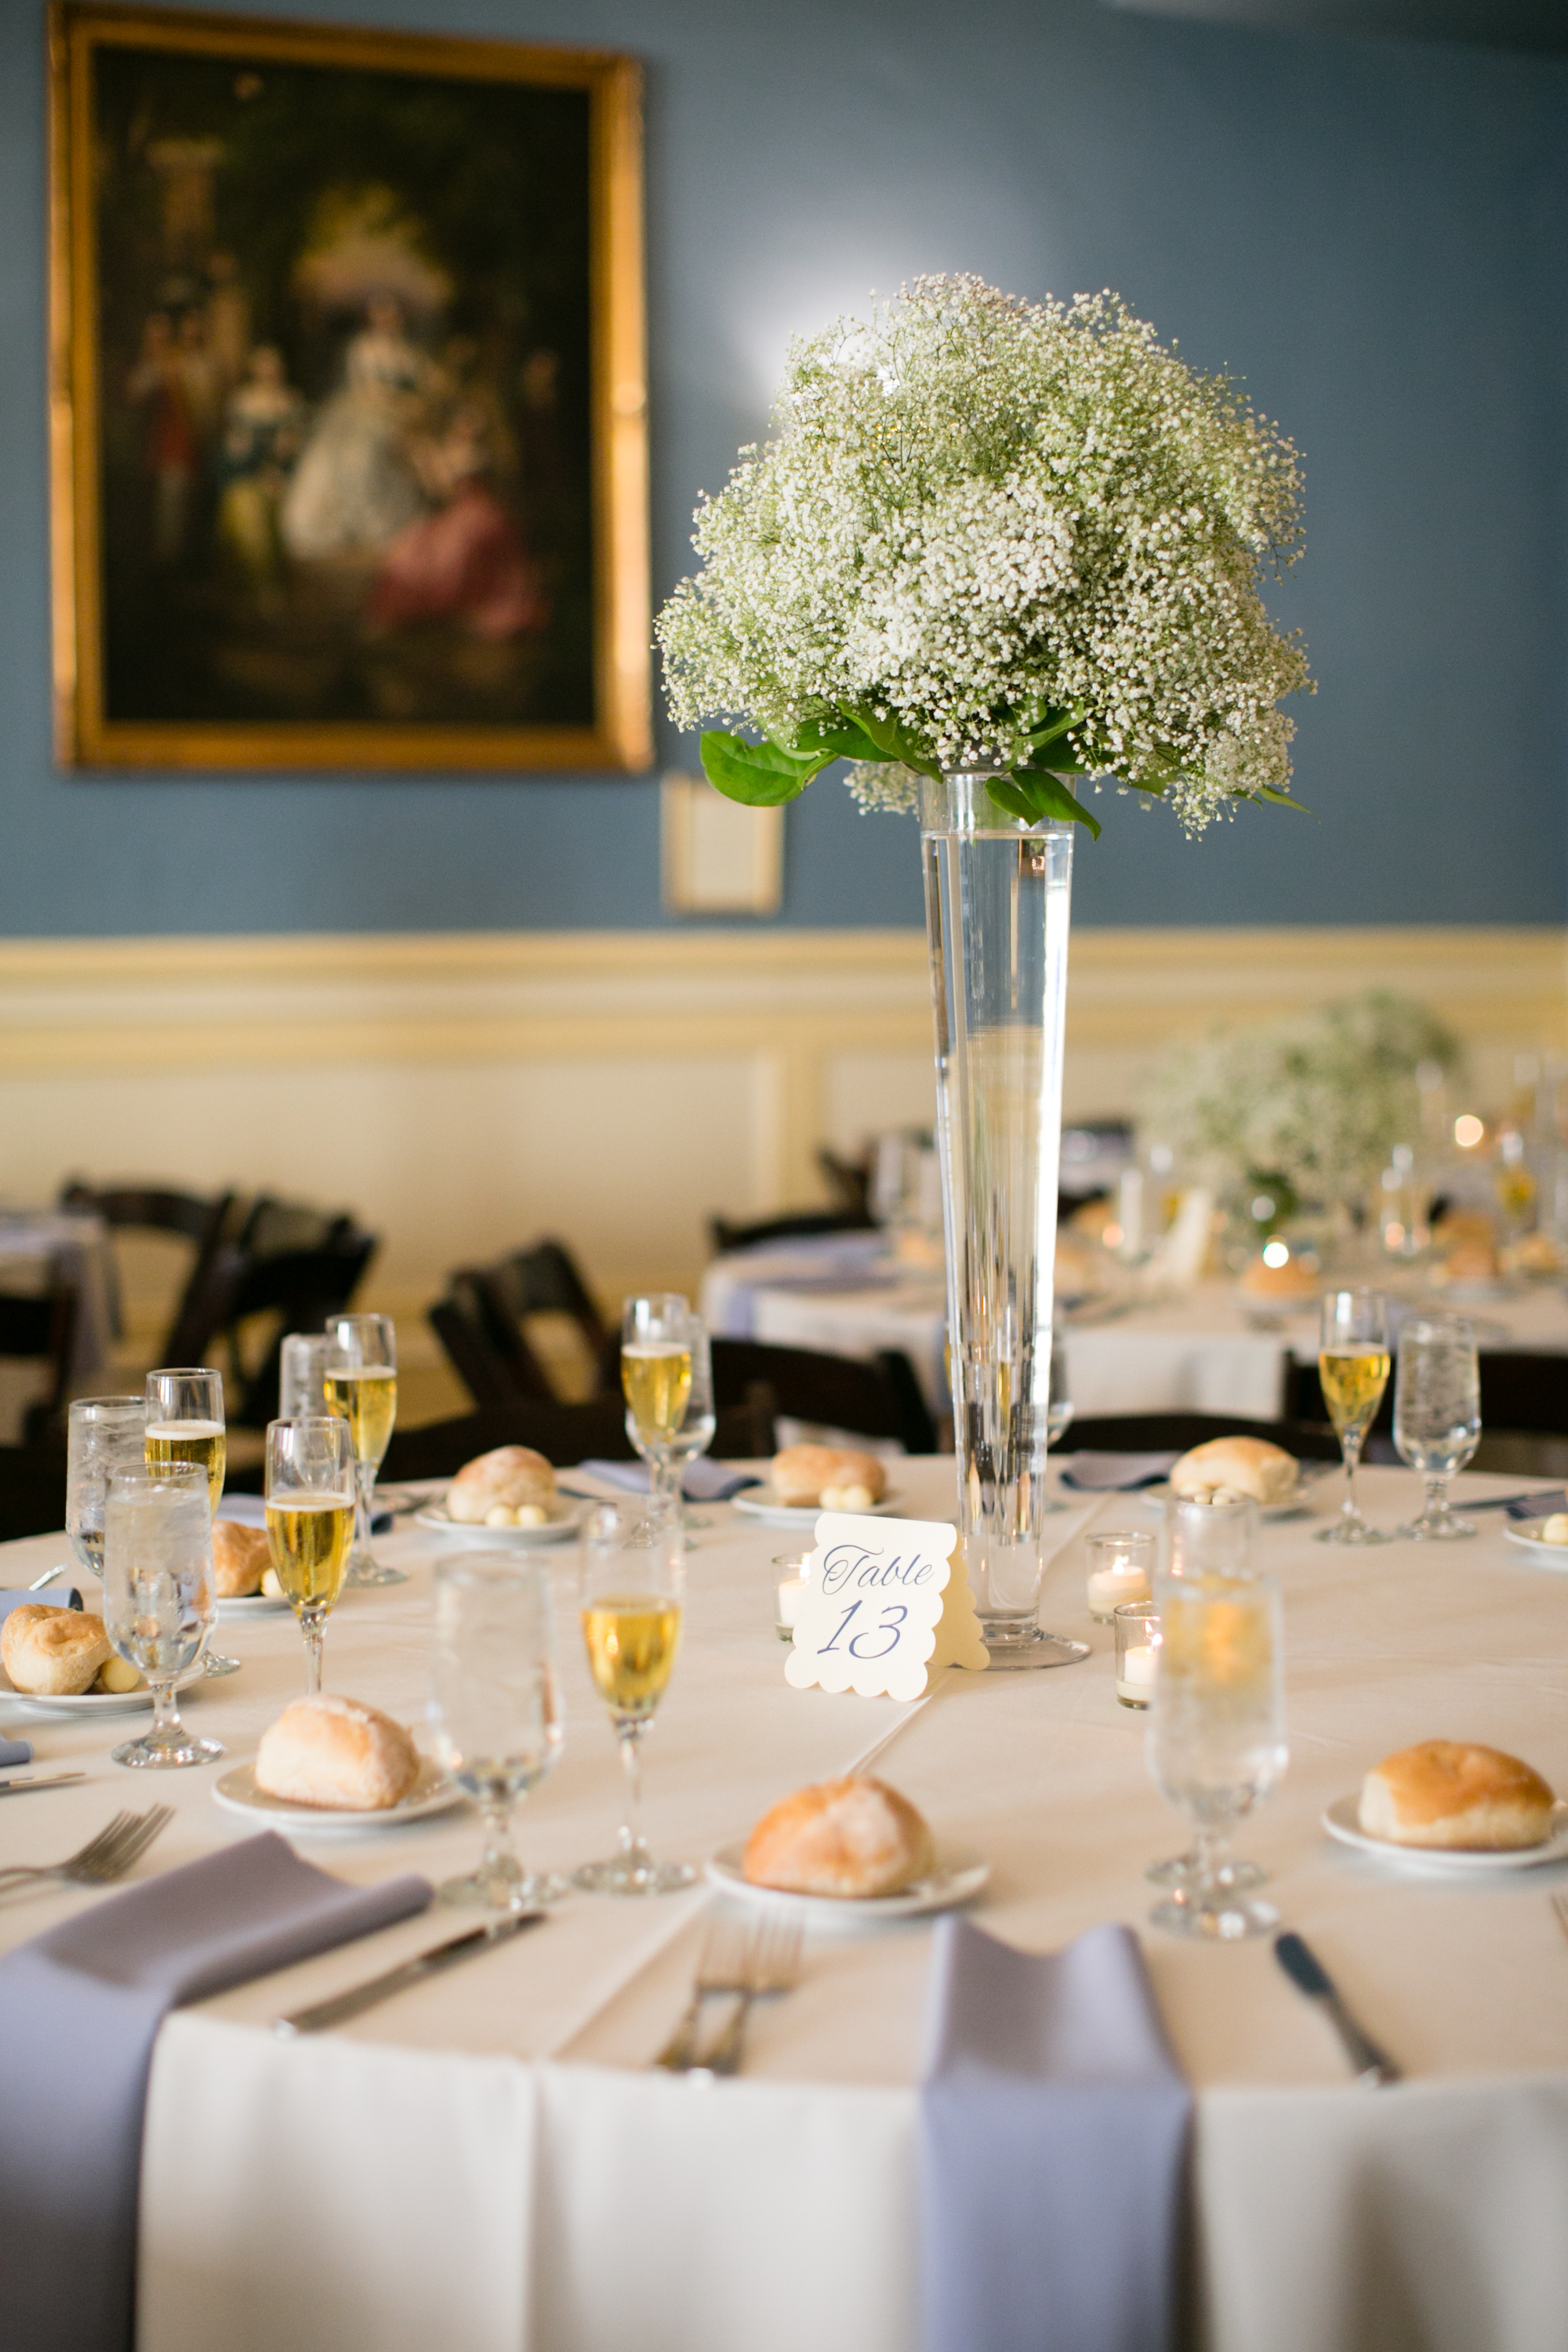 Racquet Club wedding by Peach Plum Pear Photo_041.jpg